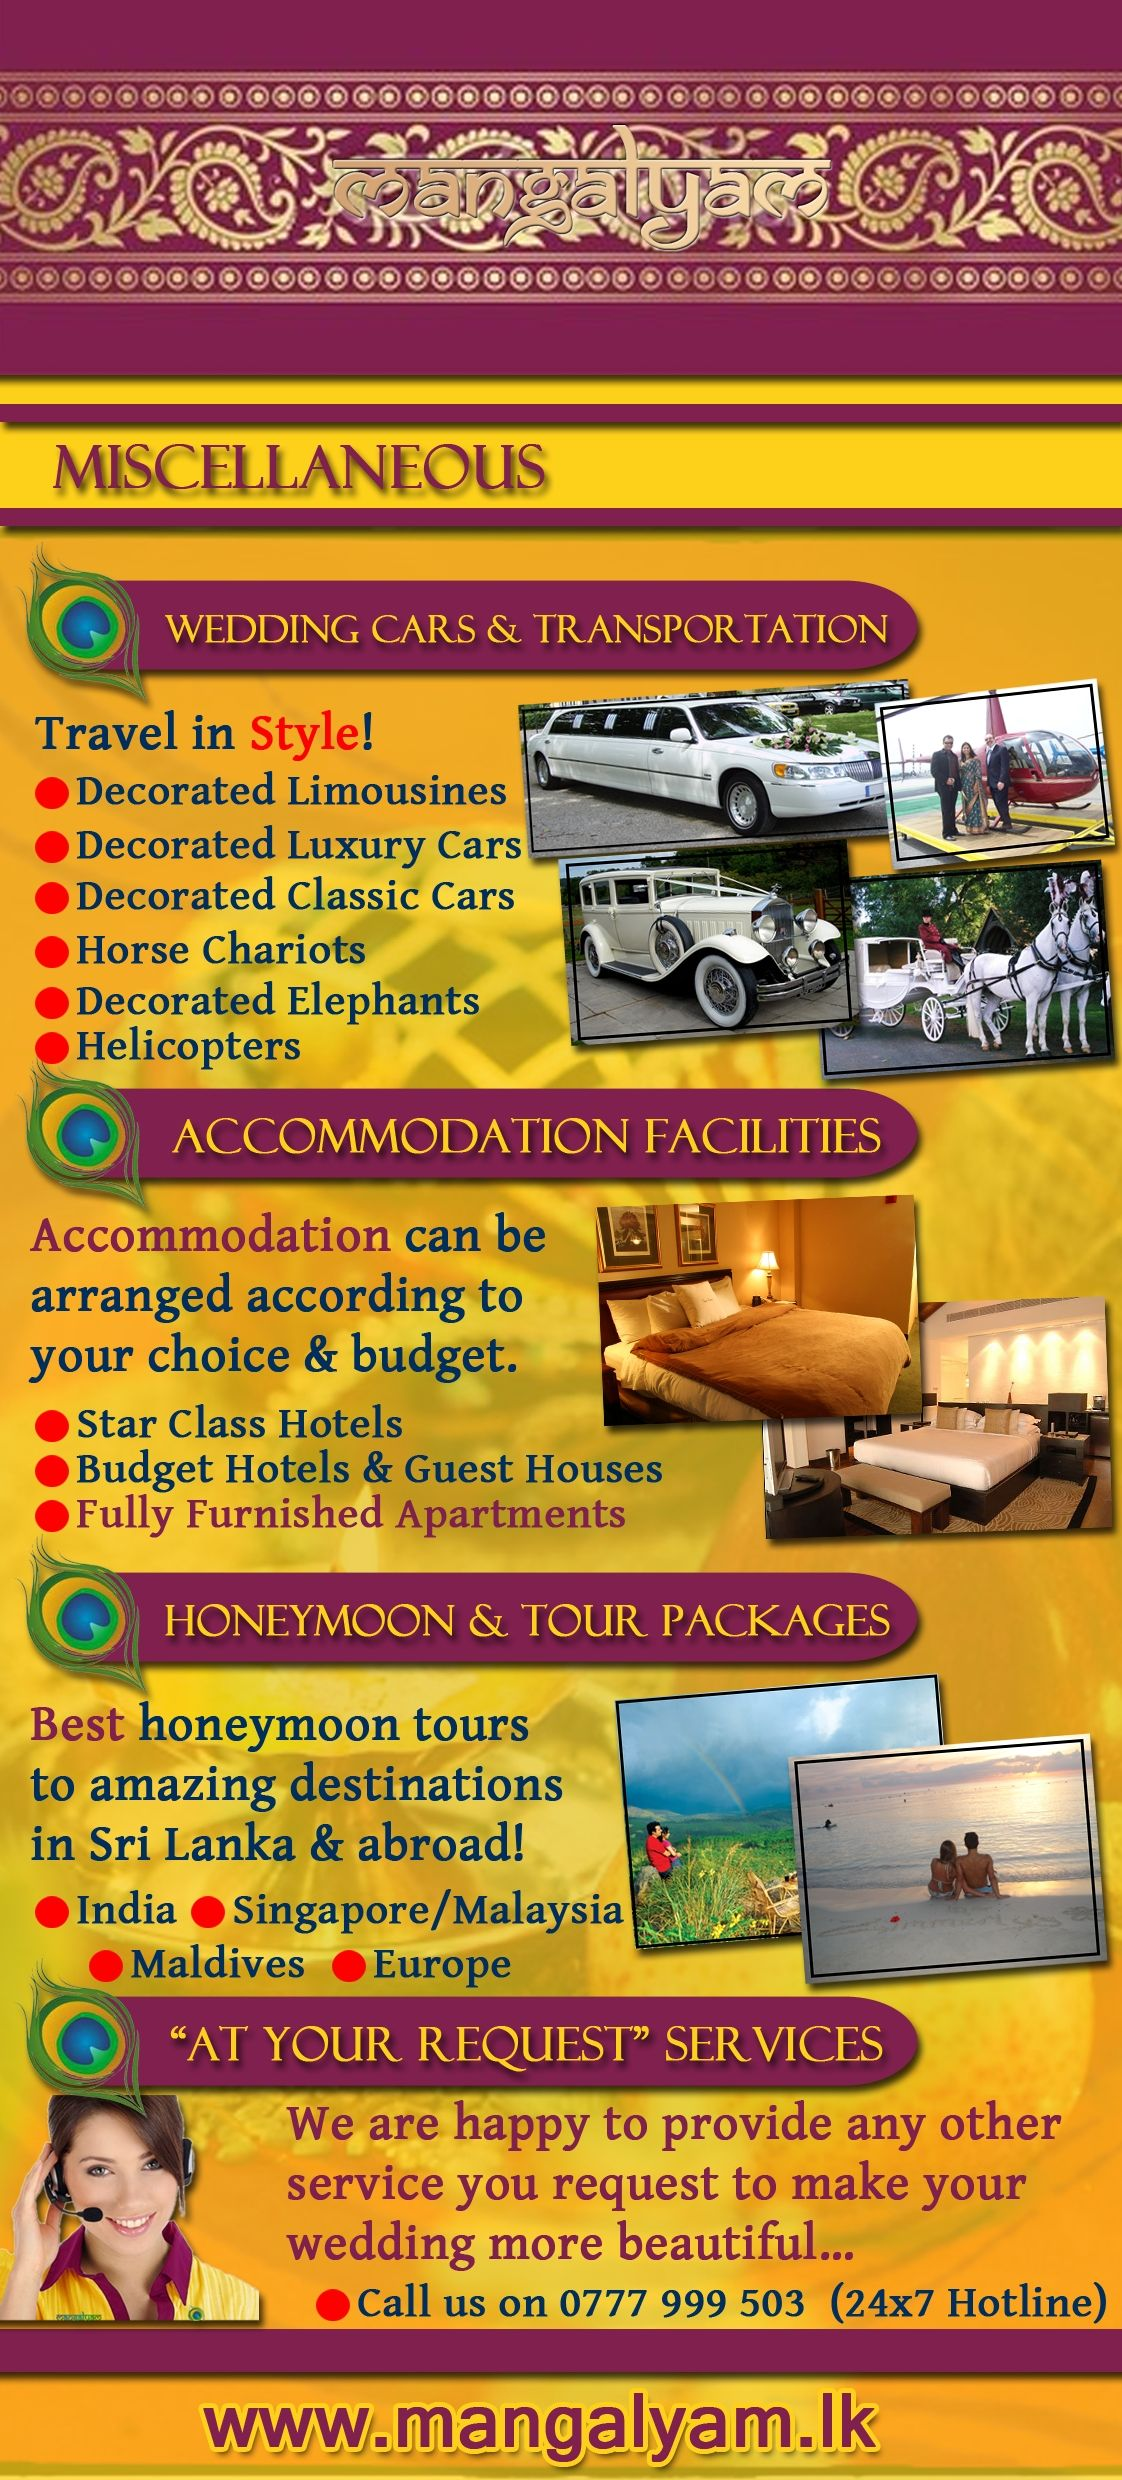 Mangalyam Brochure Wedding Cars Transport Accommodation Honeymoon Packages